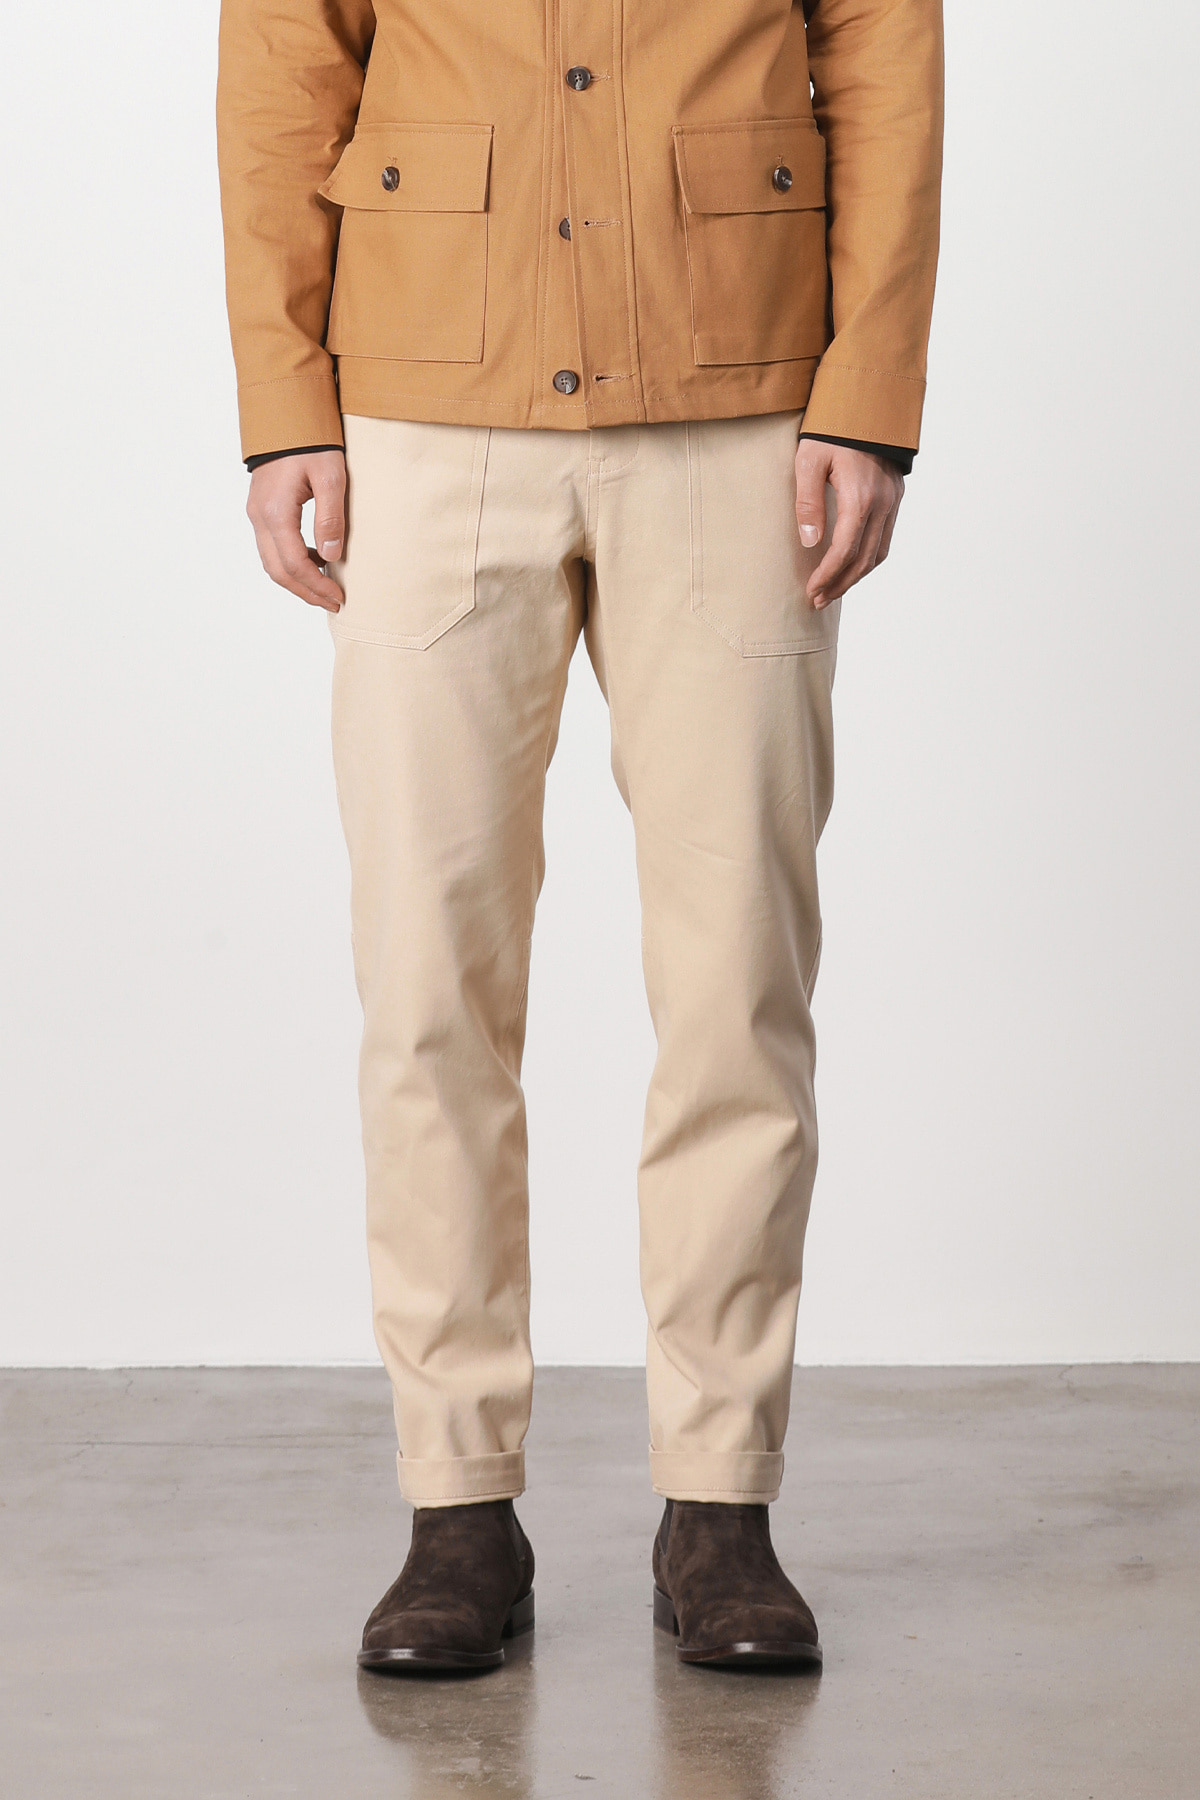 페이탈리즘 #jp09 Fatigue relax cotton pants (beige)